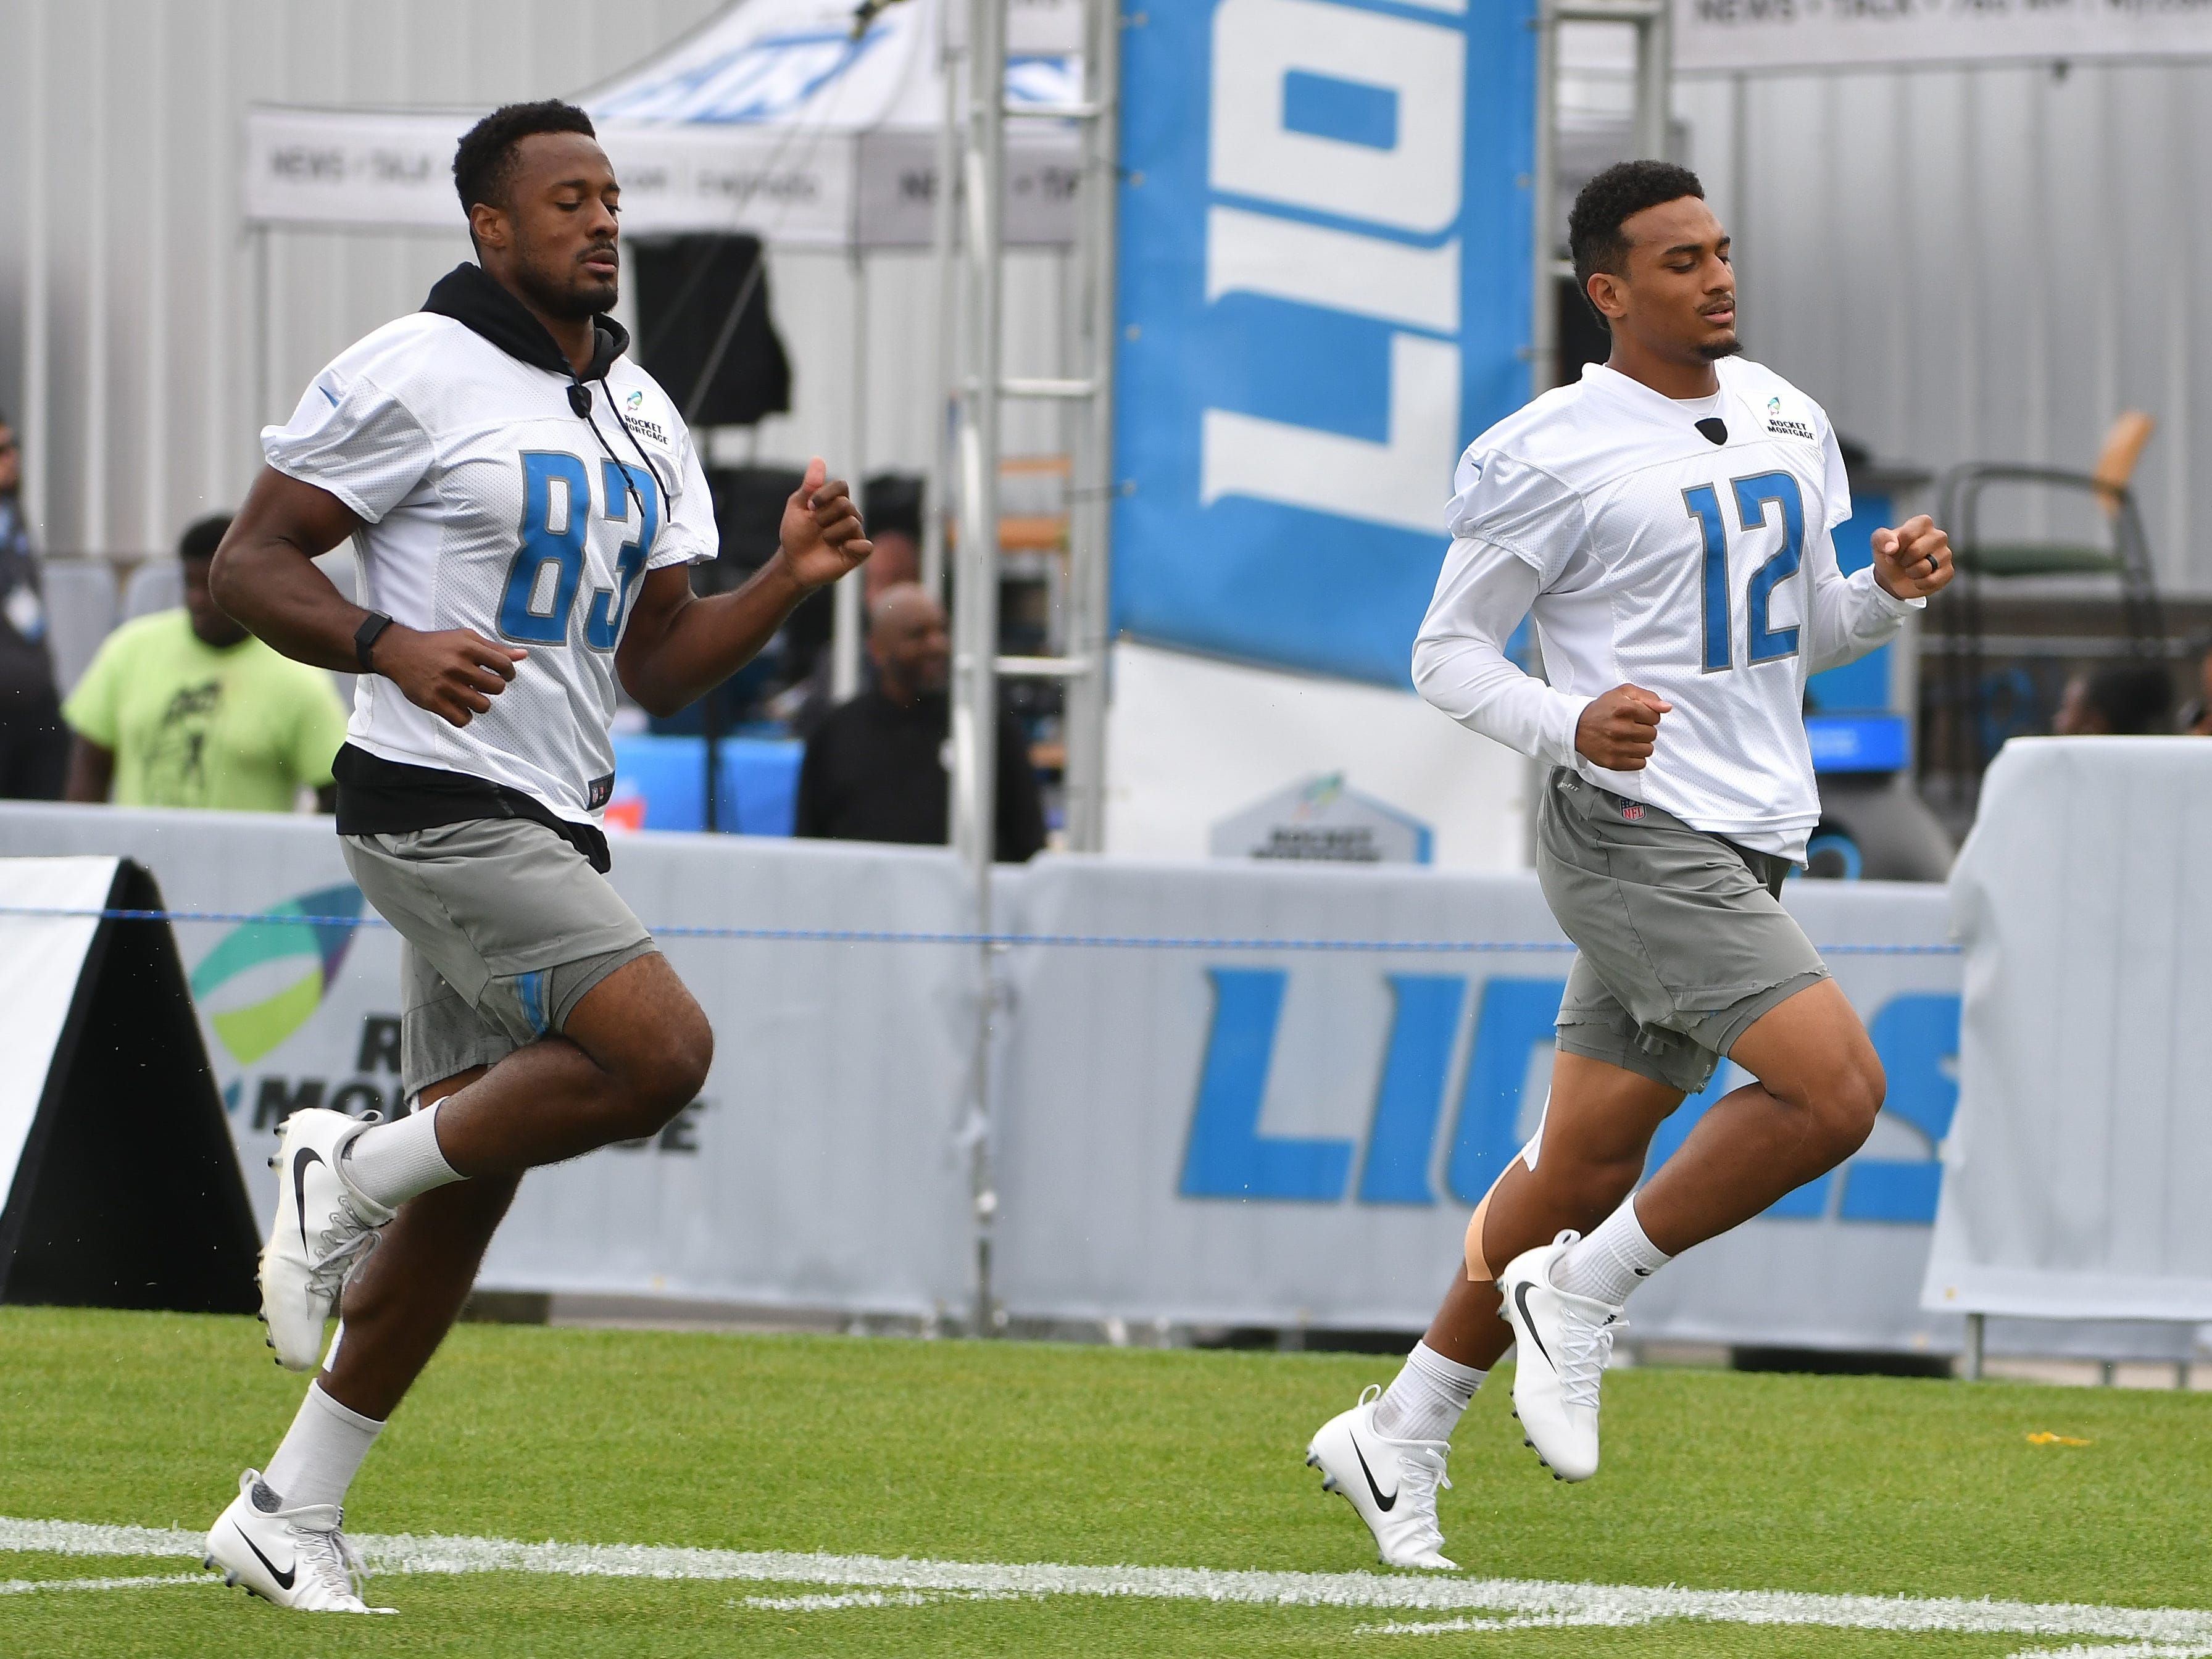 Lions wide receiver Dontez Ford and Bradley Marquez run during practice but did not participate in drills.